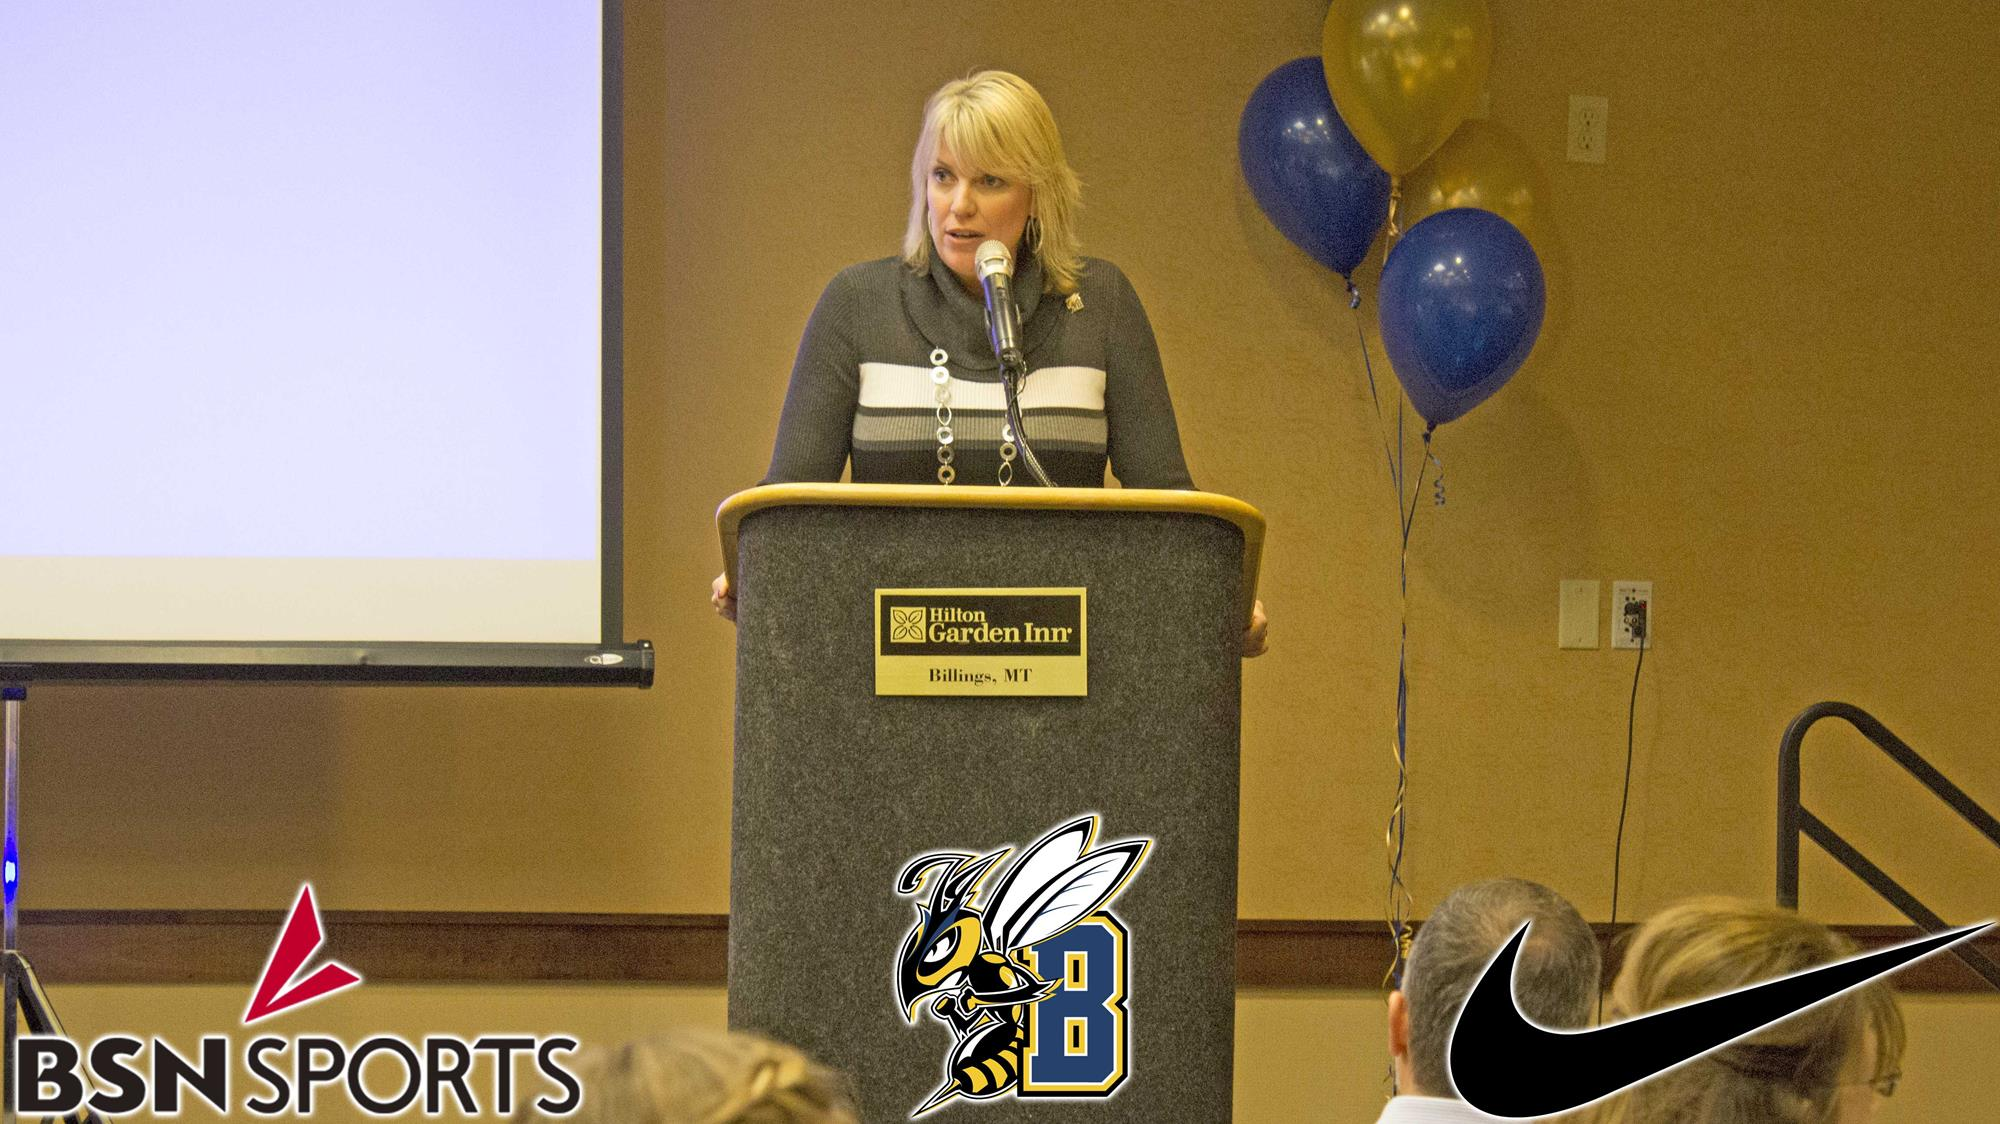 MSUB Athletics announces partnership with BSN SPORTS & Nike - MSU ...